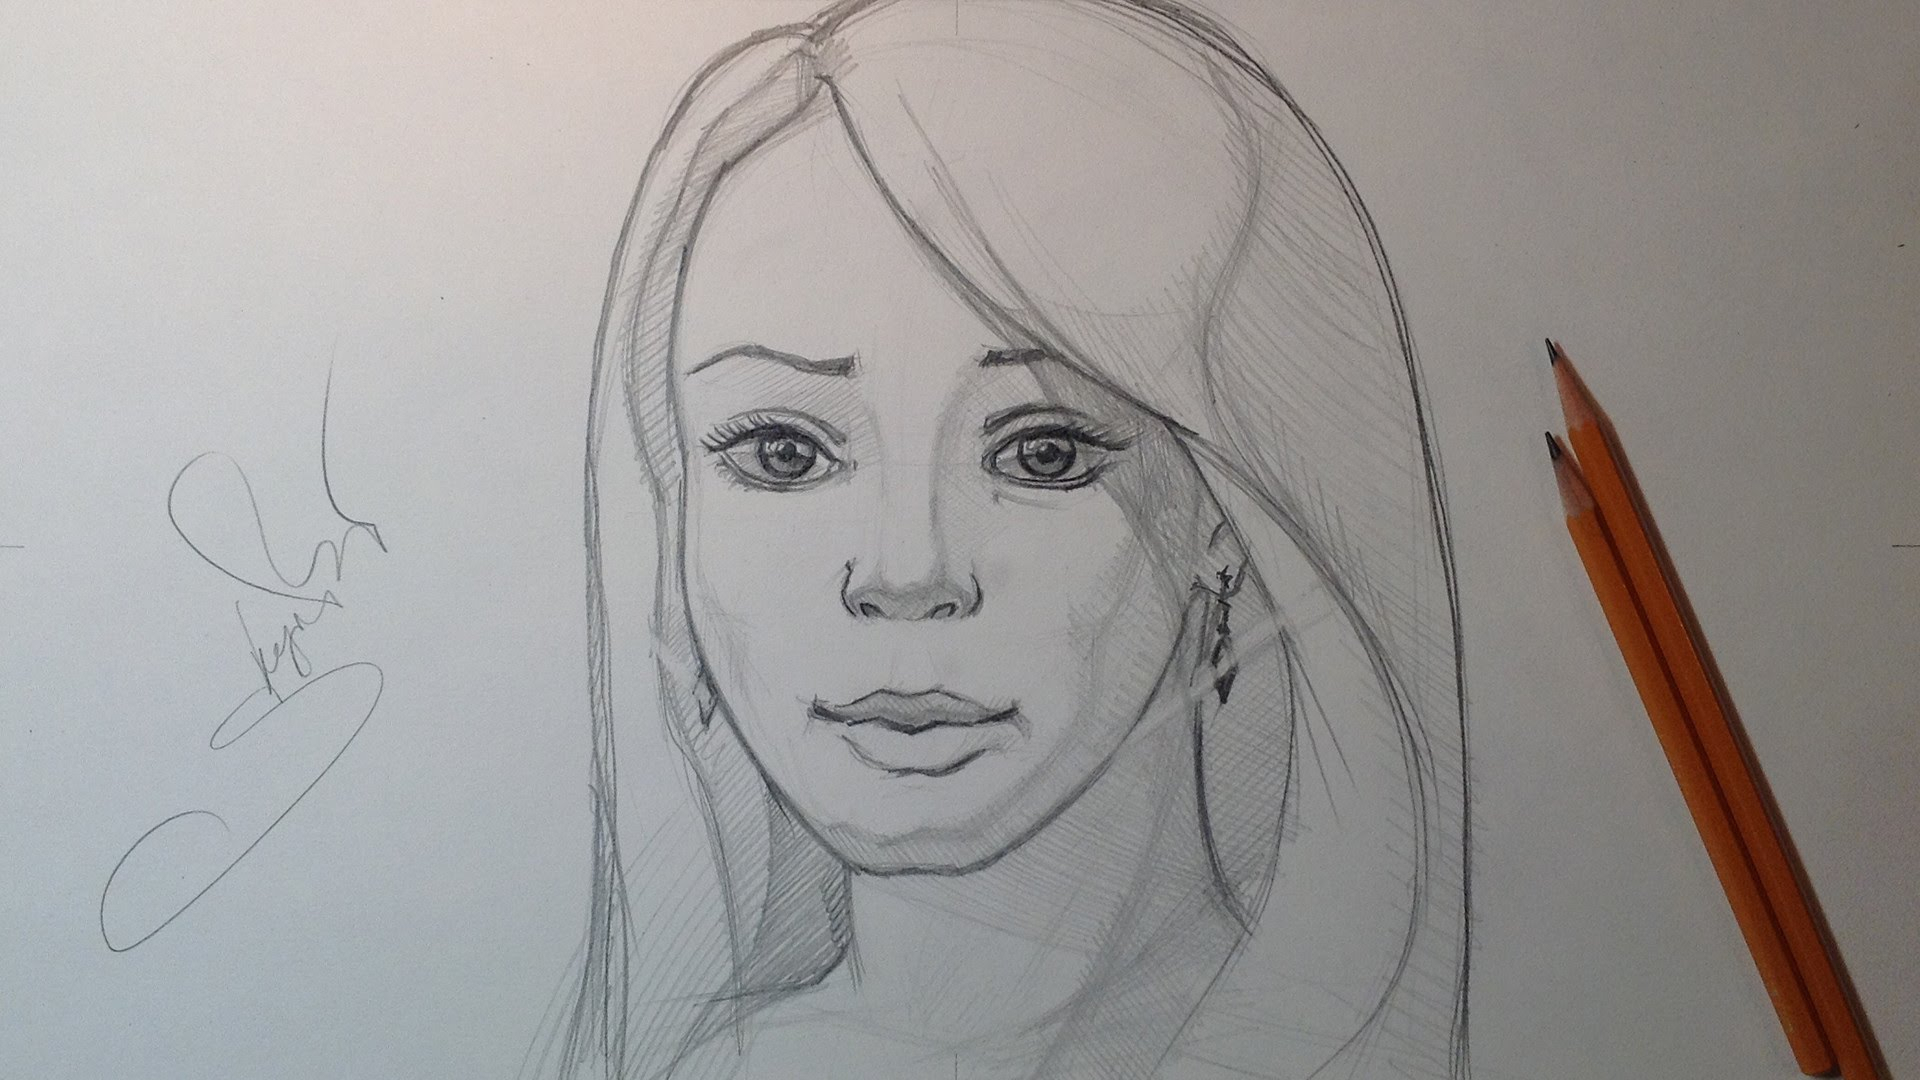 1920x1080 Made By Human Pencil Scratch Drawing Sketch Face Cute Woman